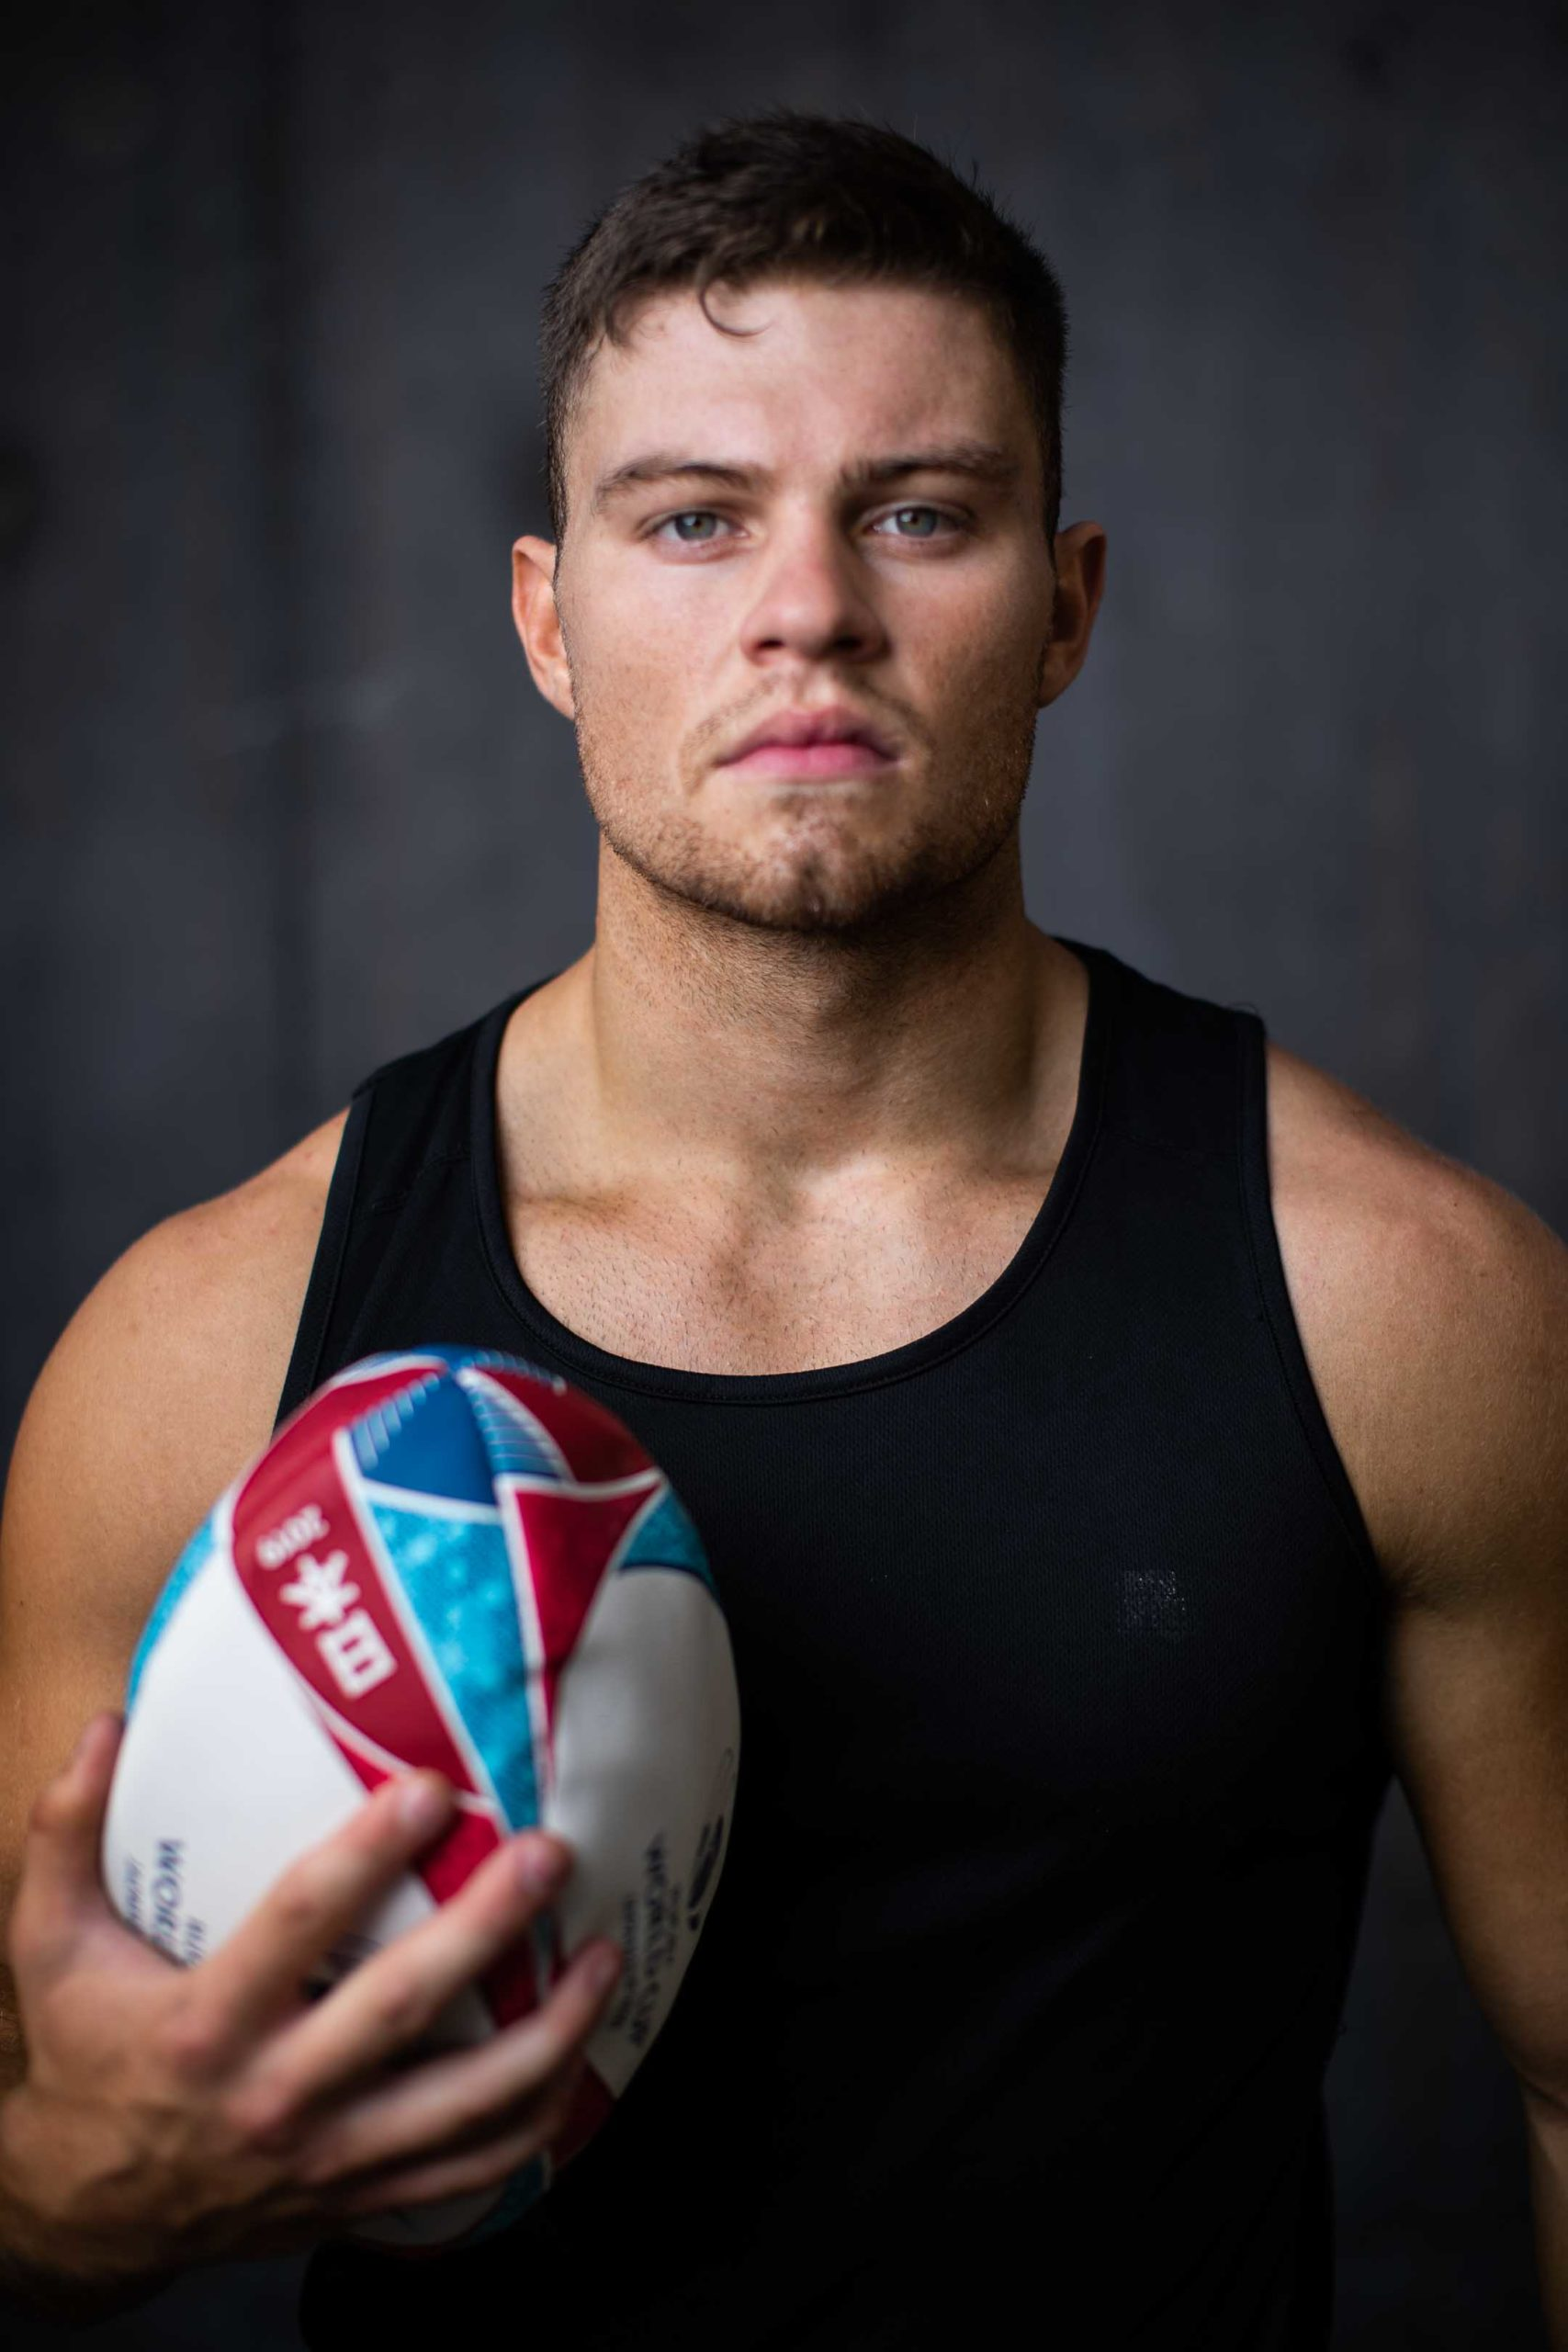 Sean holding a rugby ball whilst wearing a black singlet